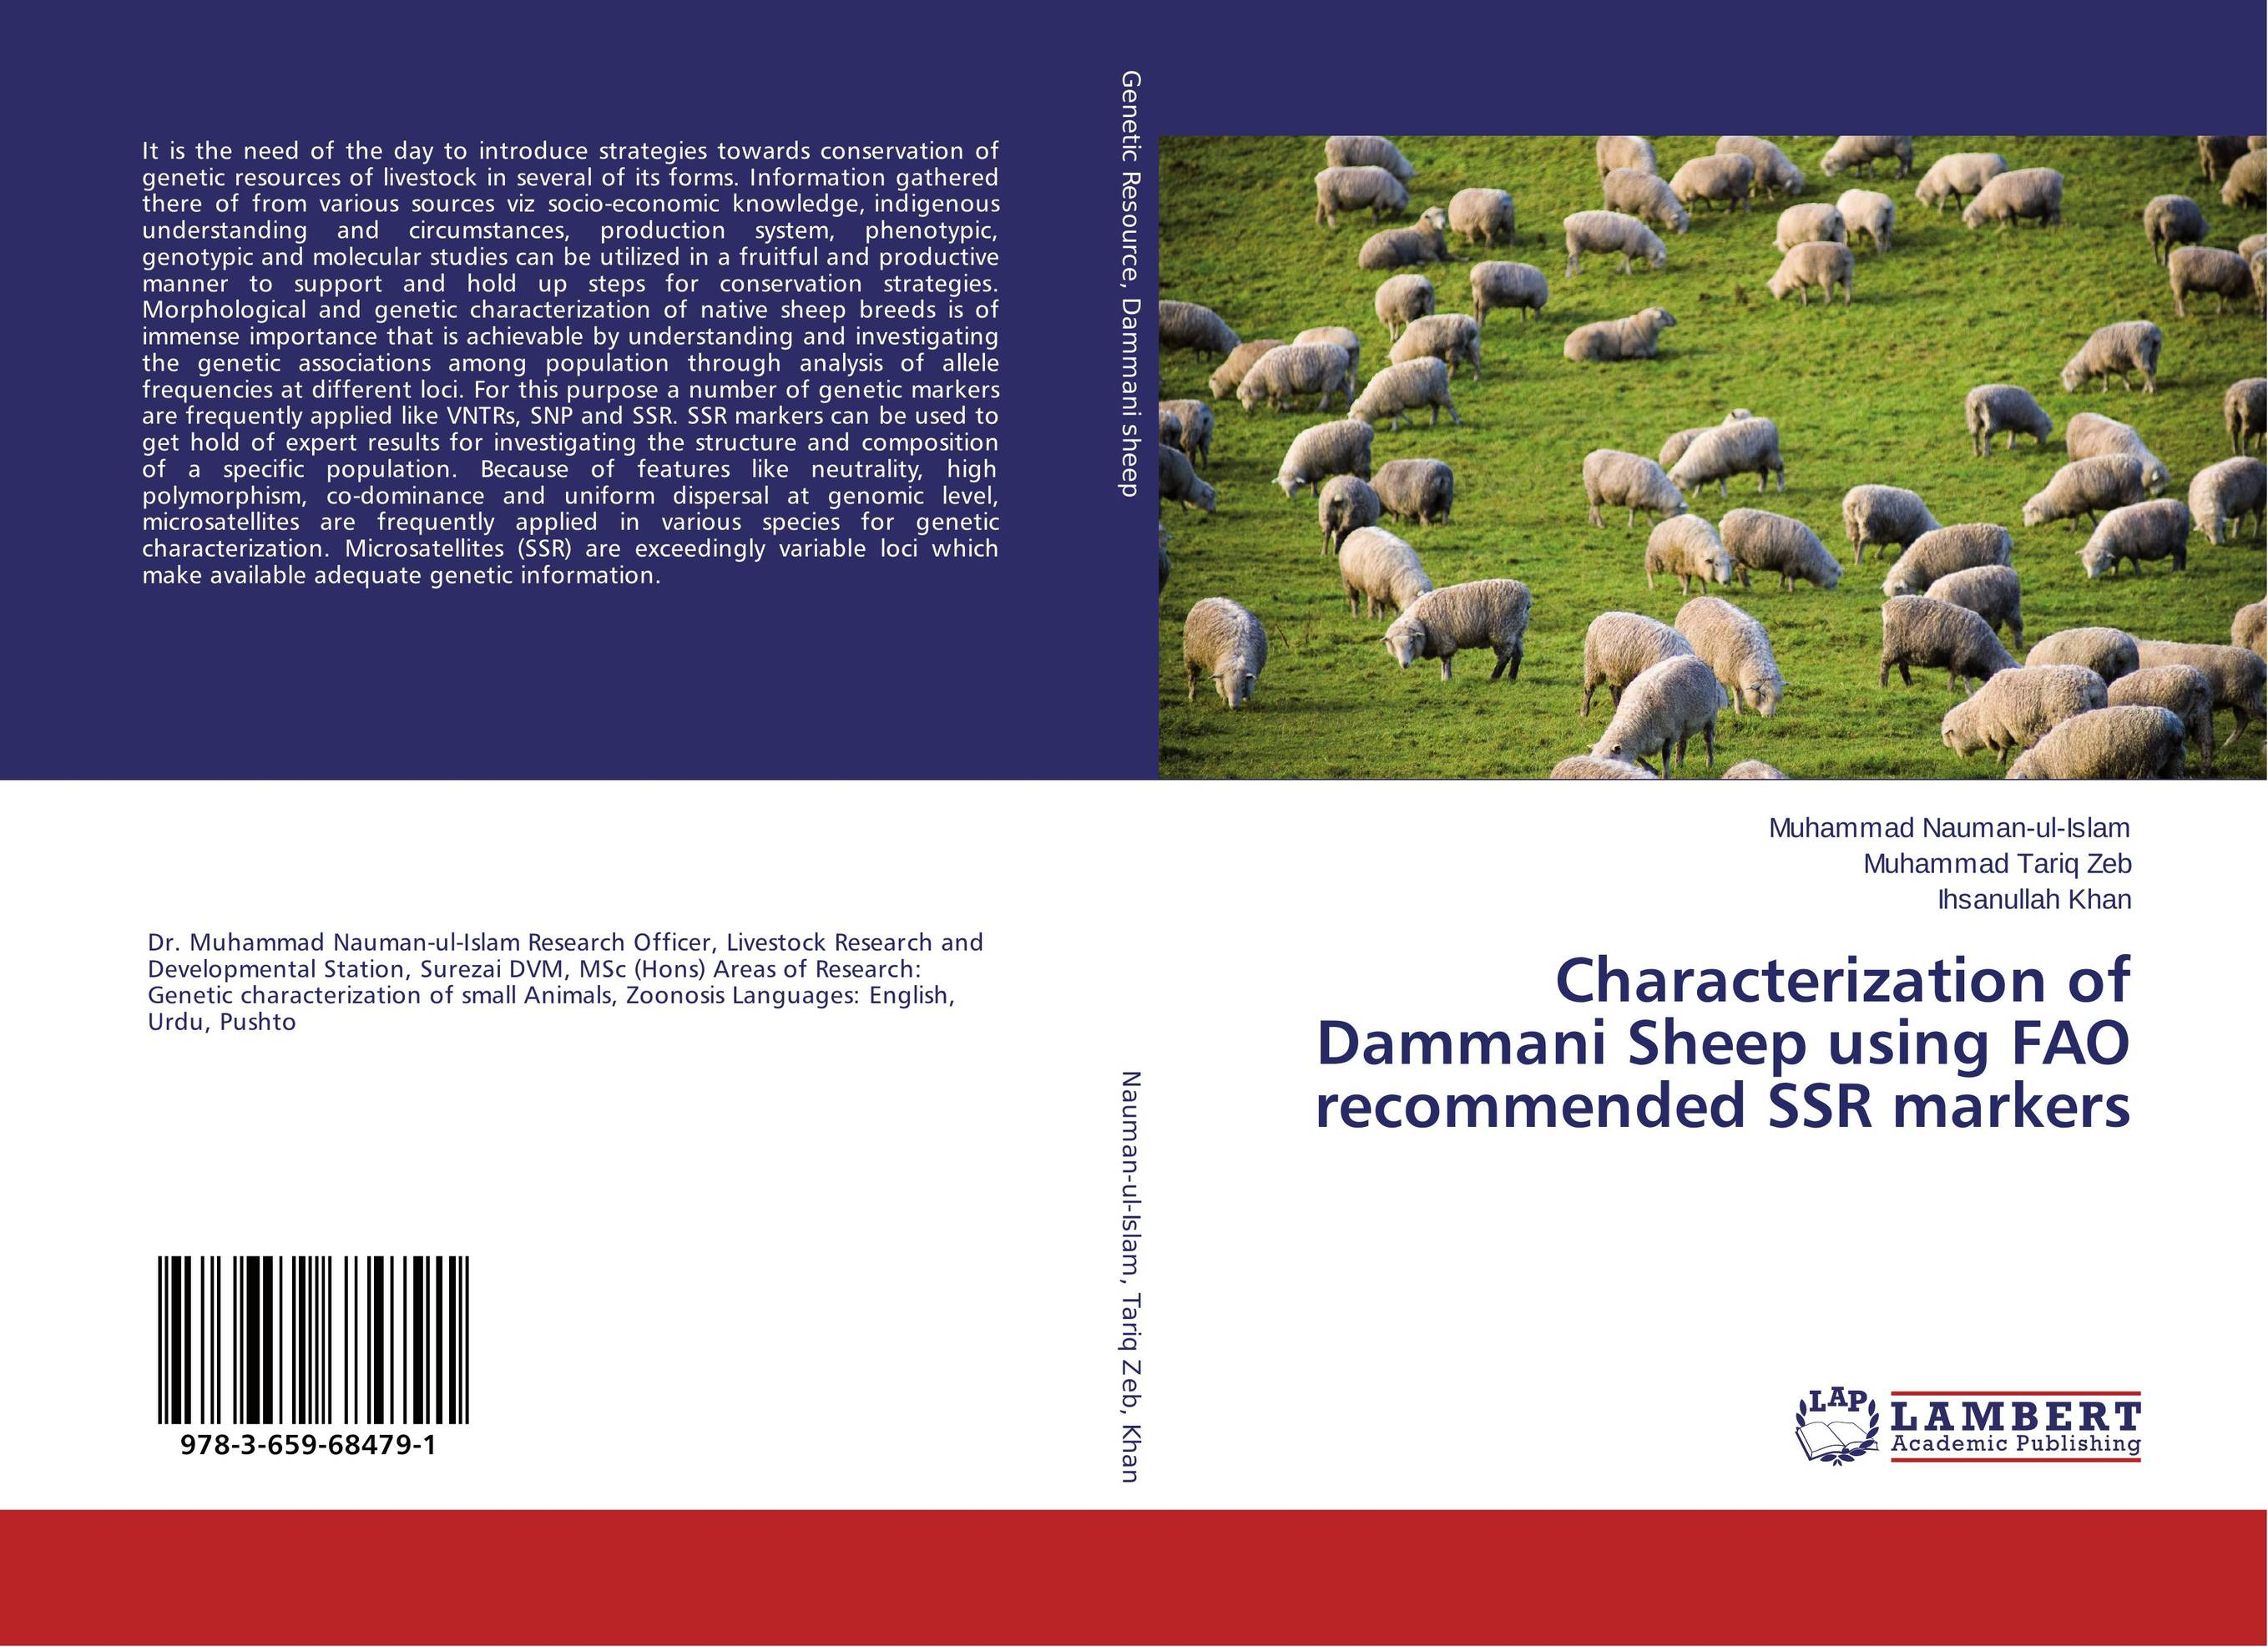 Characterization of Dammani Sheep using FAO recommended SSR markers eman ibrahim el sayed abdel wahab molecular genetic characterization studies of some soybean cultivars